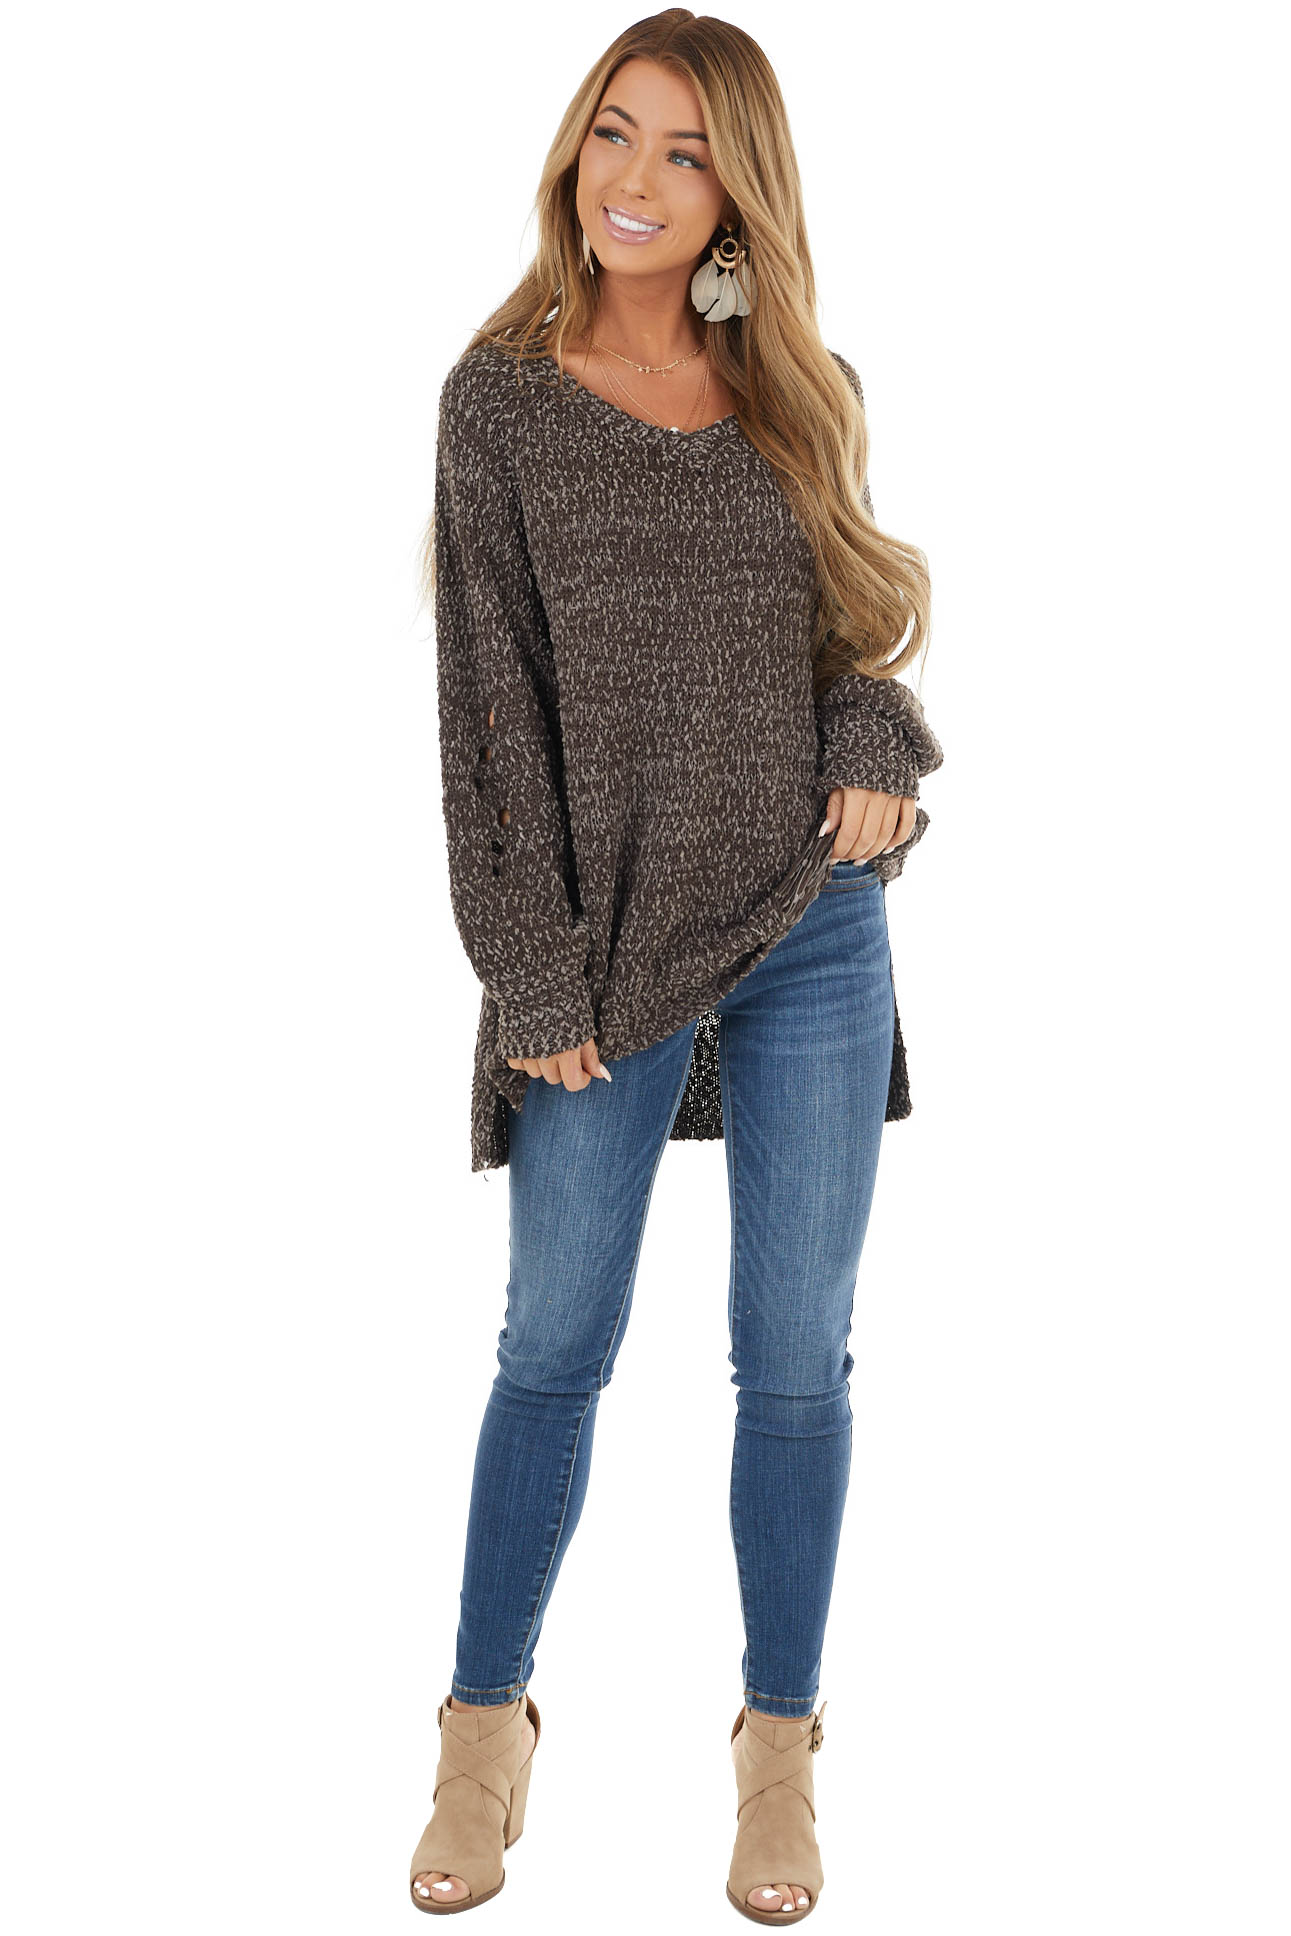 Coffee and Taupe Sweater with Distressed Detail and Cut Outs